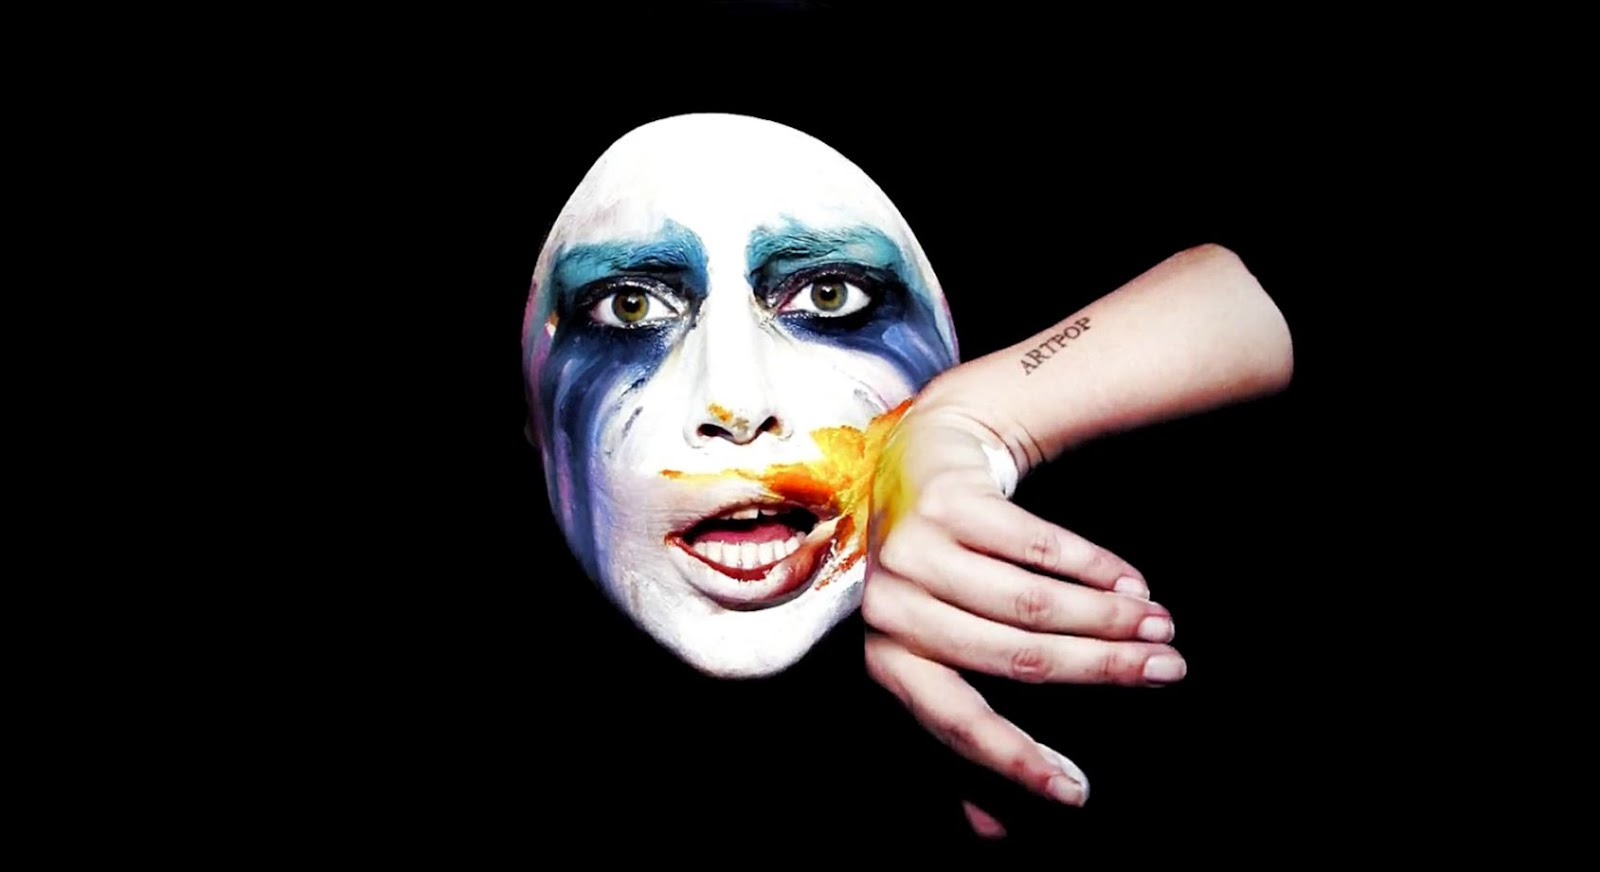 Lady Gaga Applause Wallpapers Wallpapers Awards